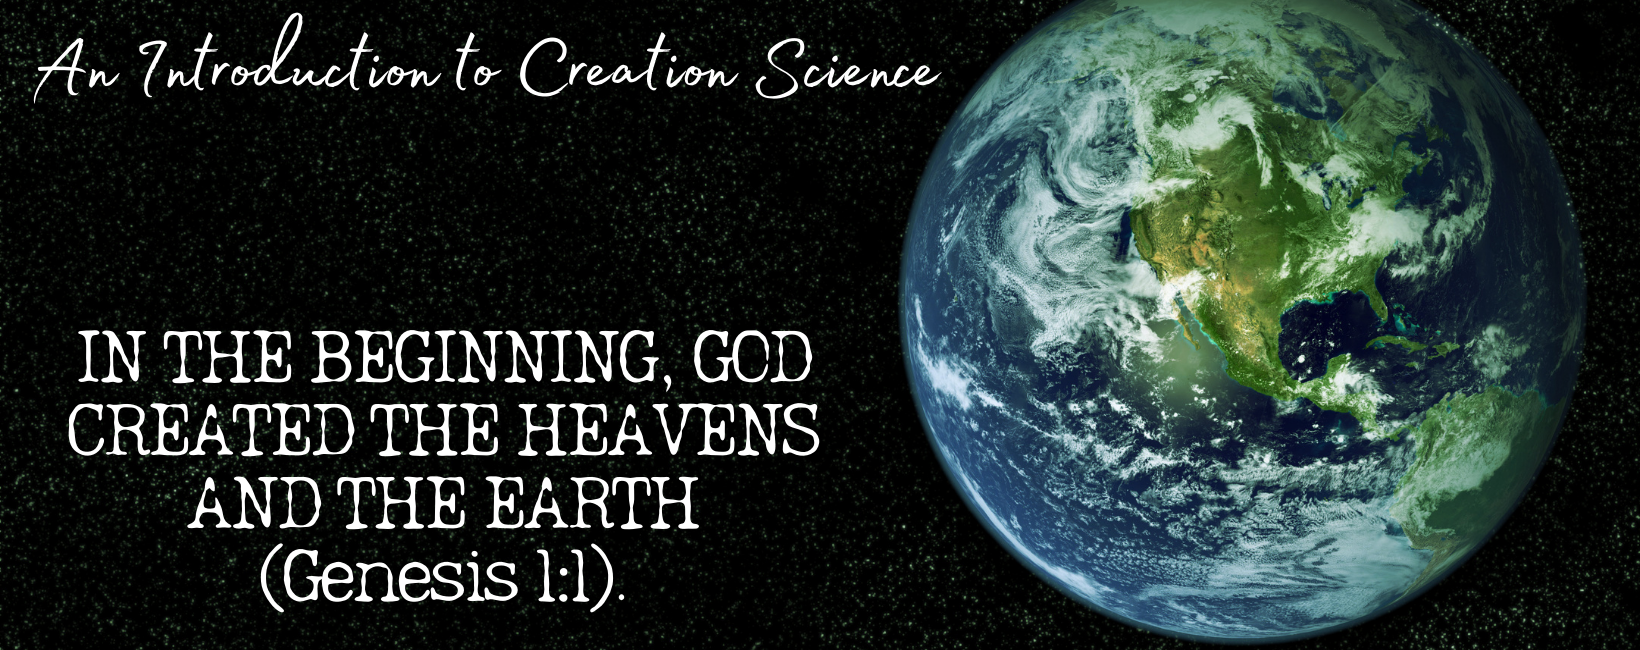 Intro to Creation Science Header